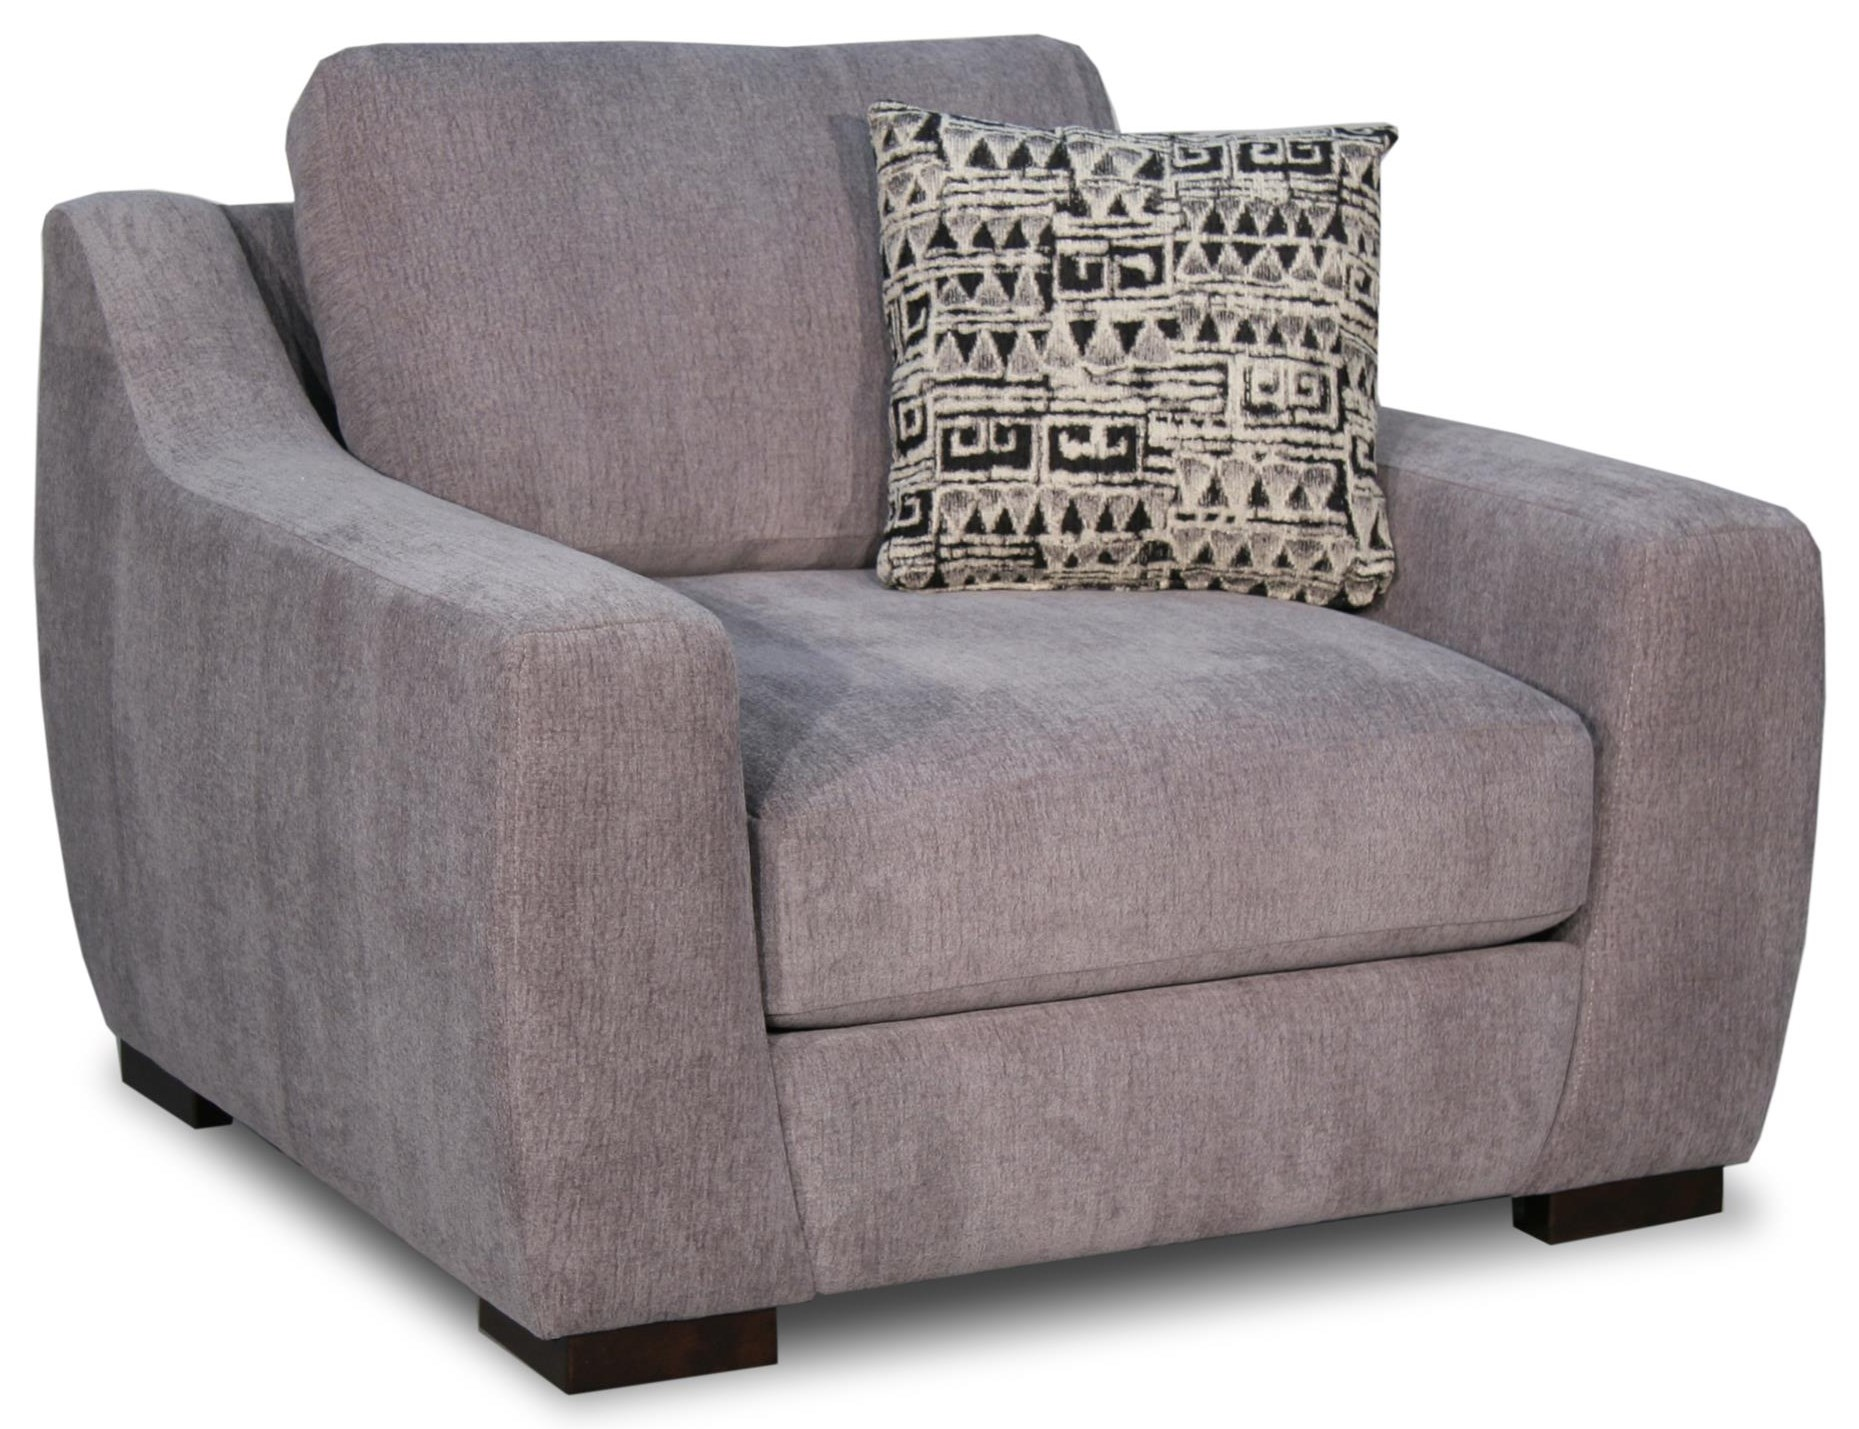 Roman Chair by Fairmont Seating at Darvin Furniture